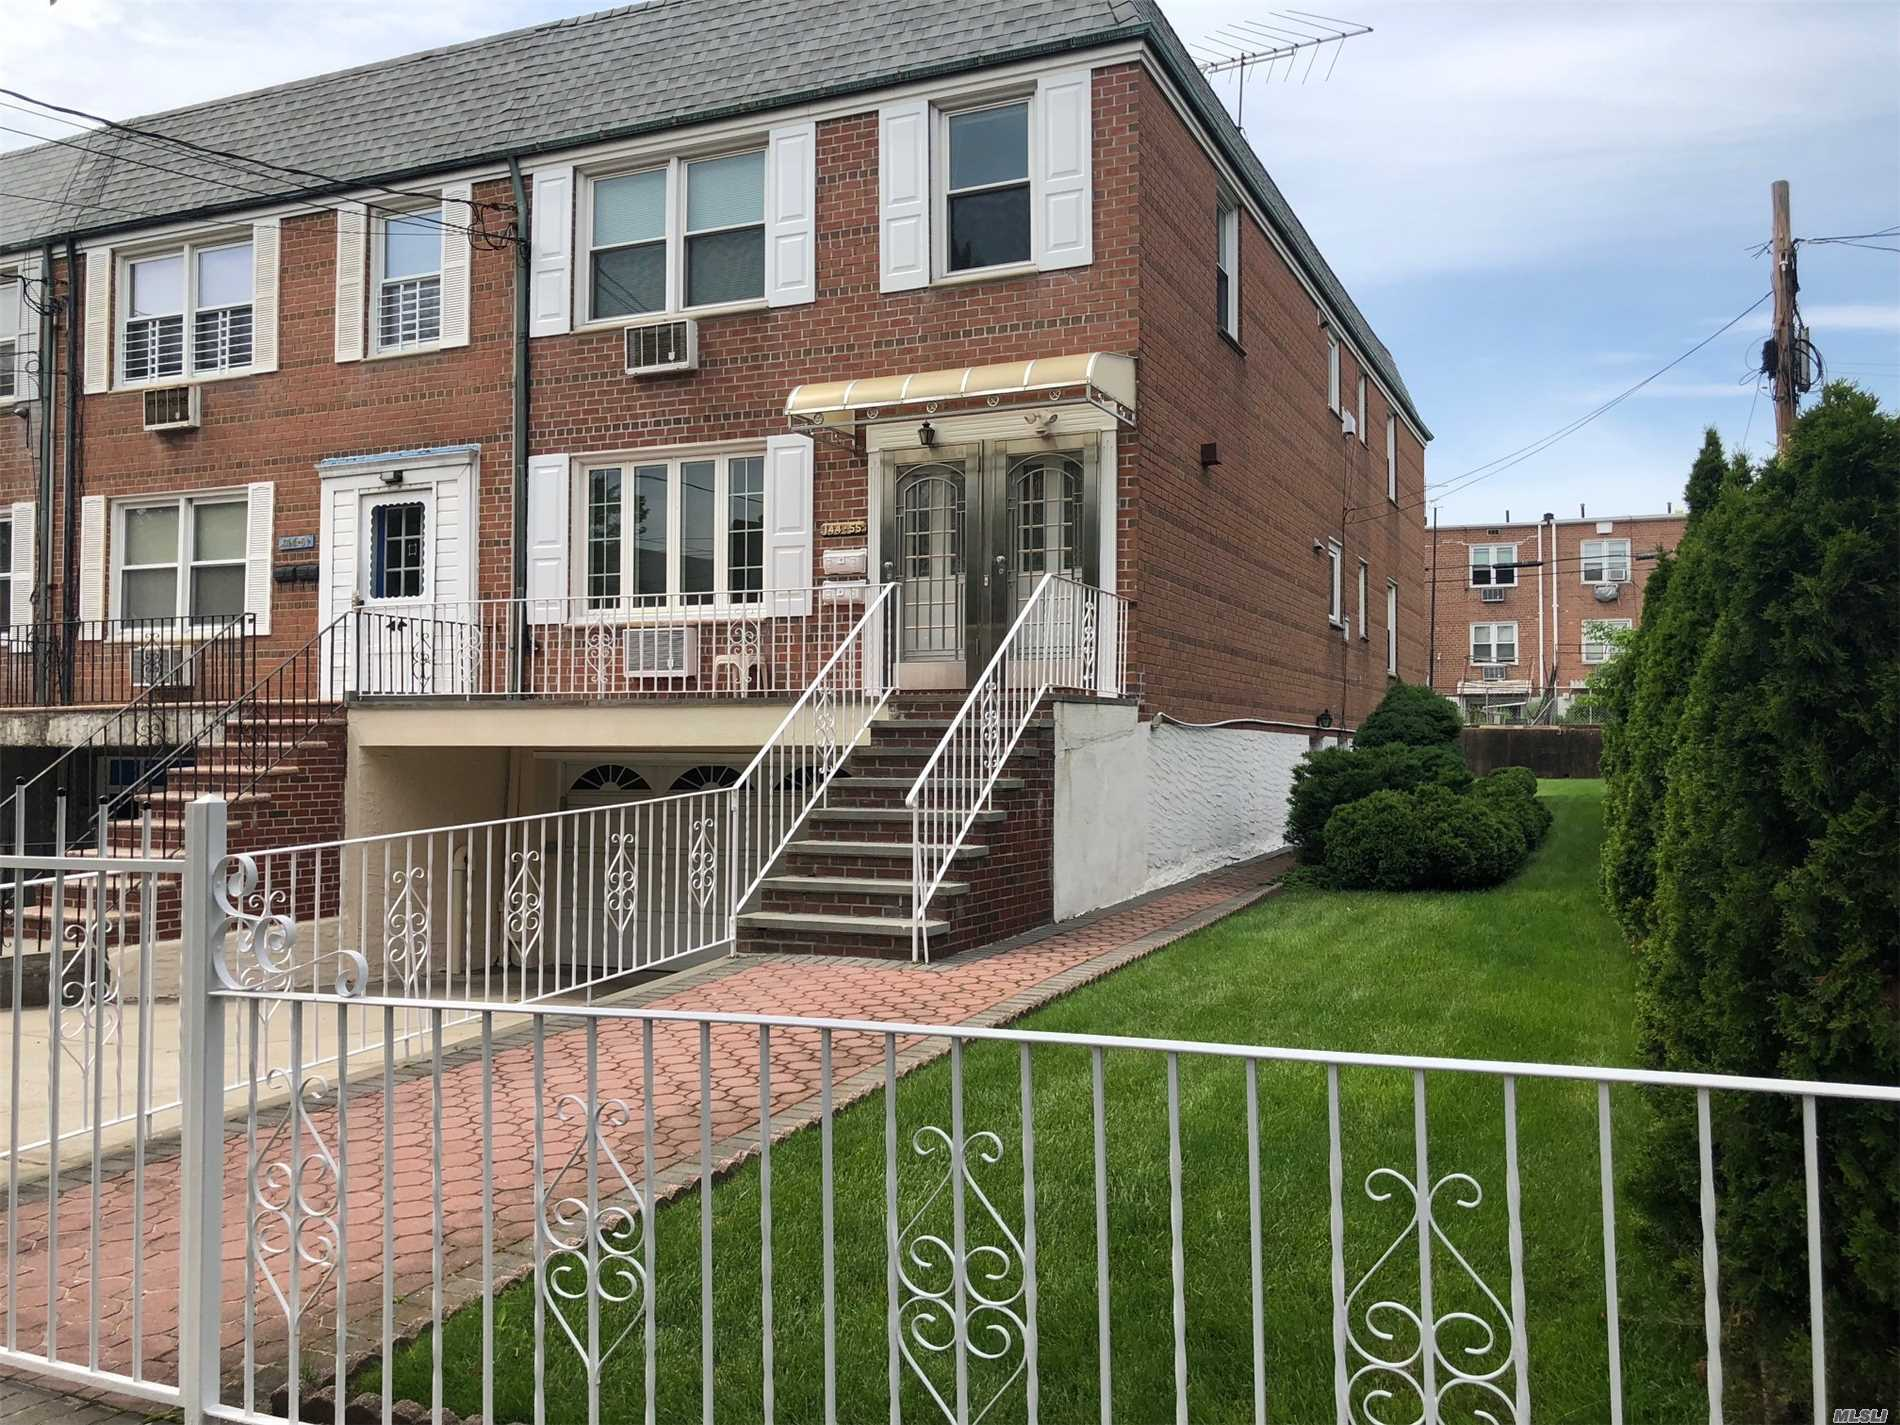 144-55 25th Rd, 1 - Flushing, New York